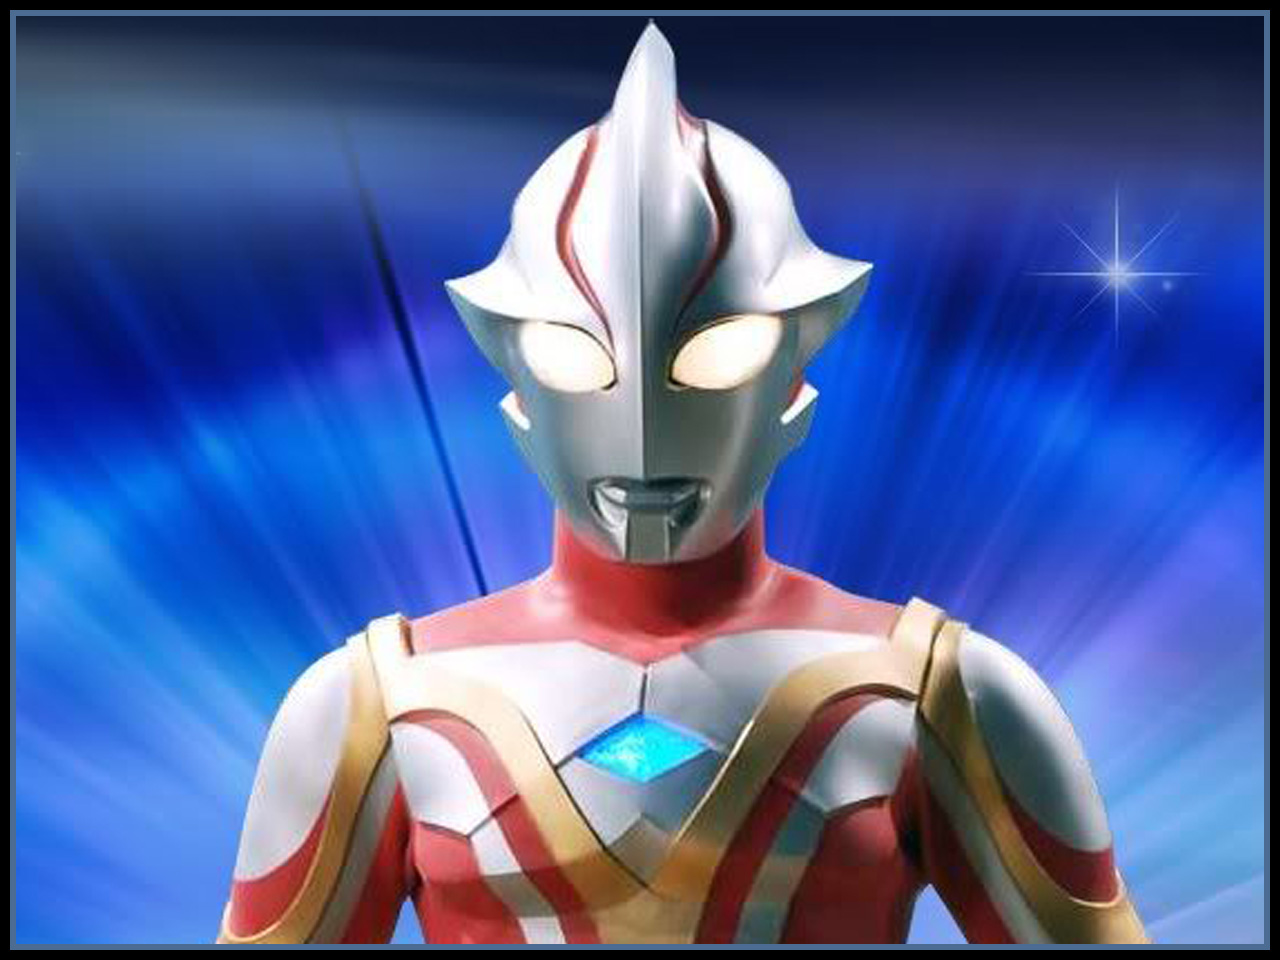 Cute Drawing Wallpaper Ultraman Wallpaper 33652 Hd Wallpapers Background